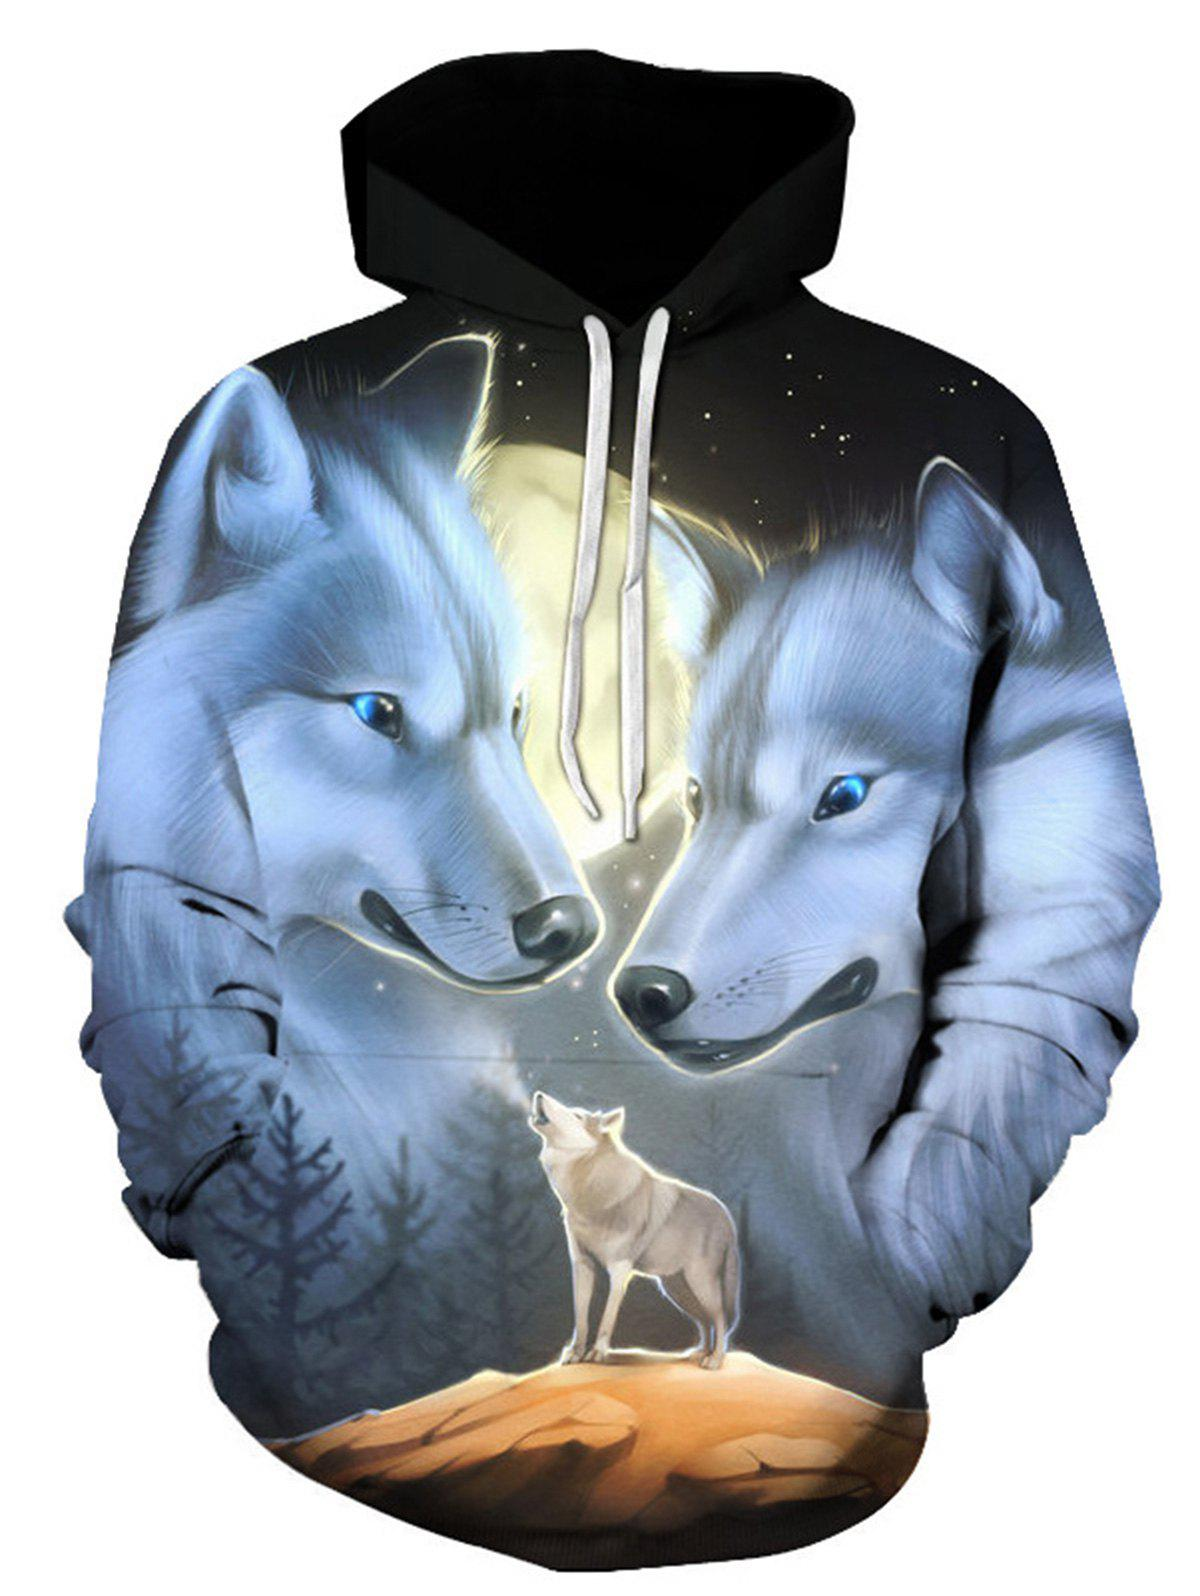 Hooded Wolves 3D Print Pullover HoodieMEN<br><br>Size: 3XL; Color: COLORMIX; Material: Cotton,Polyester; Clothes Type: Hoodie; Shirt Length: Regular; Sleeve Length: Full; Style: Fashion; Patterns: 3D,Animal; Thickness: Regular; Occasion: Casual ,Daily Use,Going Out; Weight: 0.4800kg; Package Contents: 1 x Hoodie;